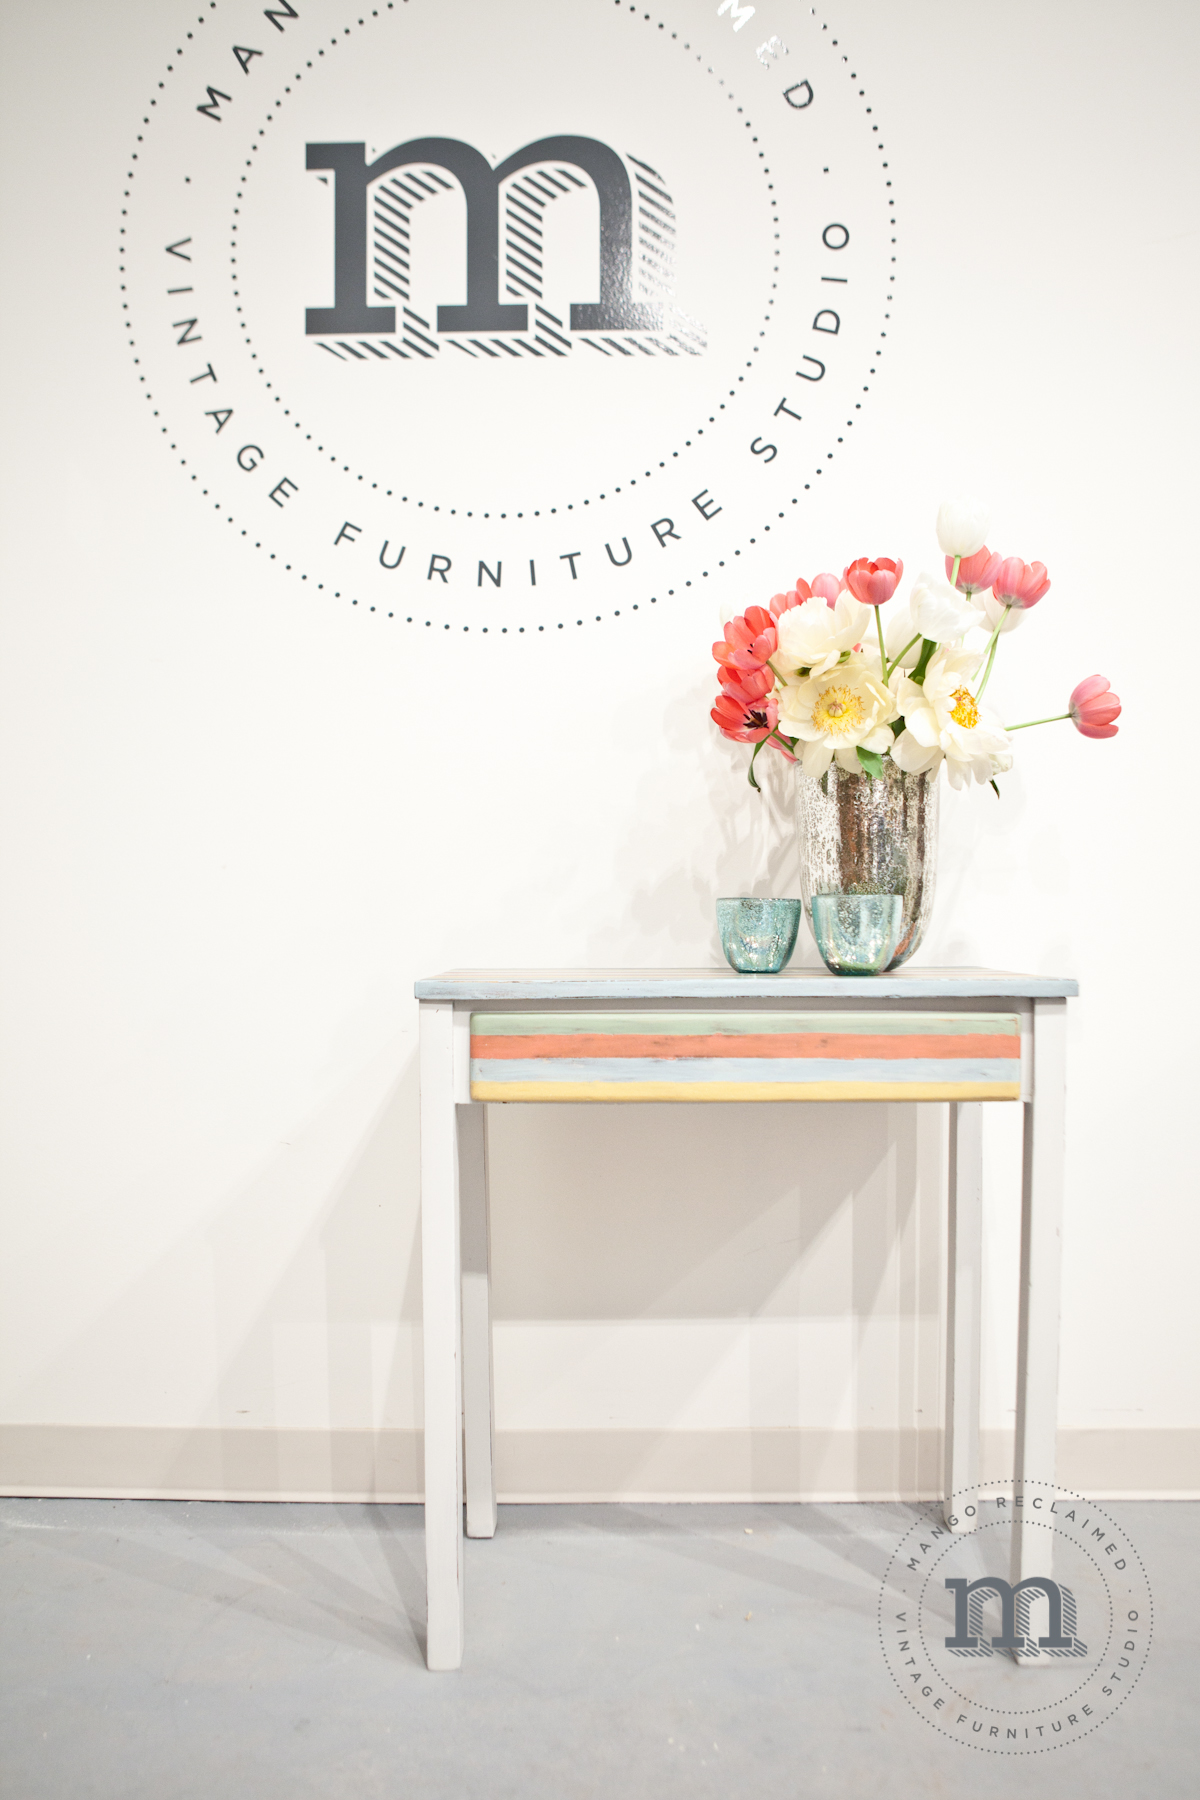 Striped Desk/Table, currently available, $185.